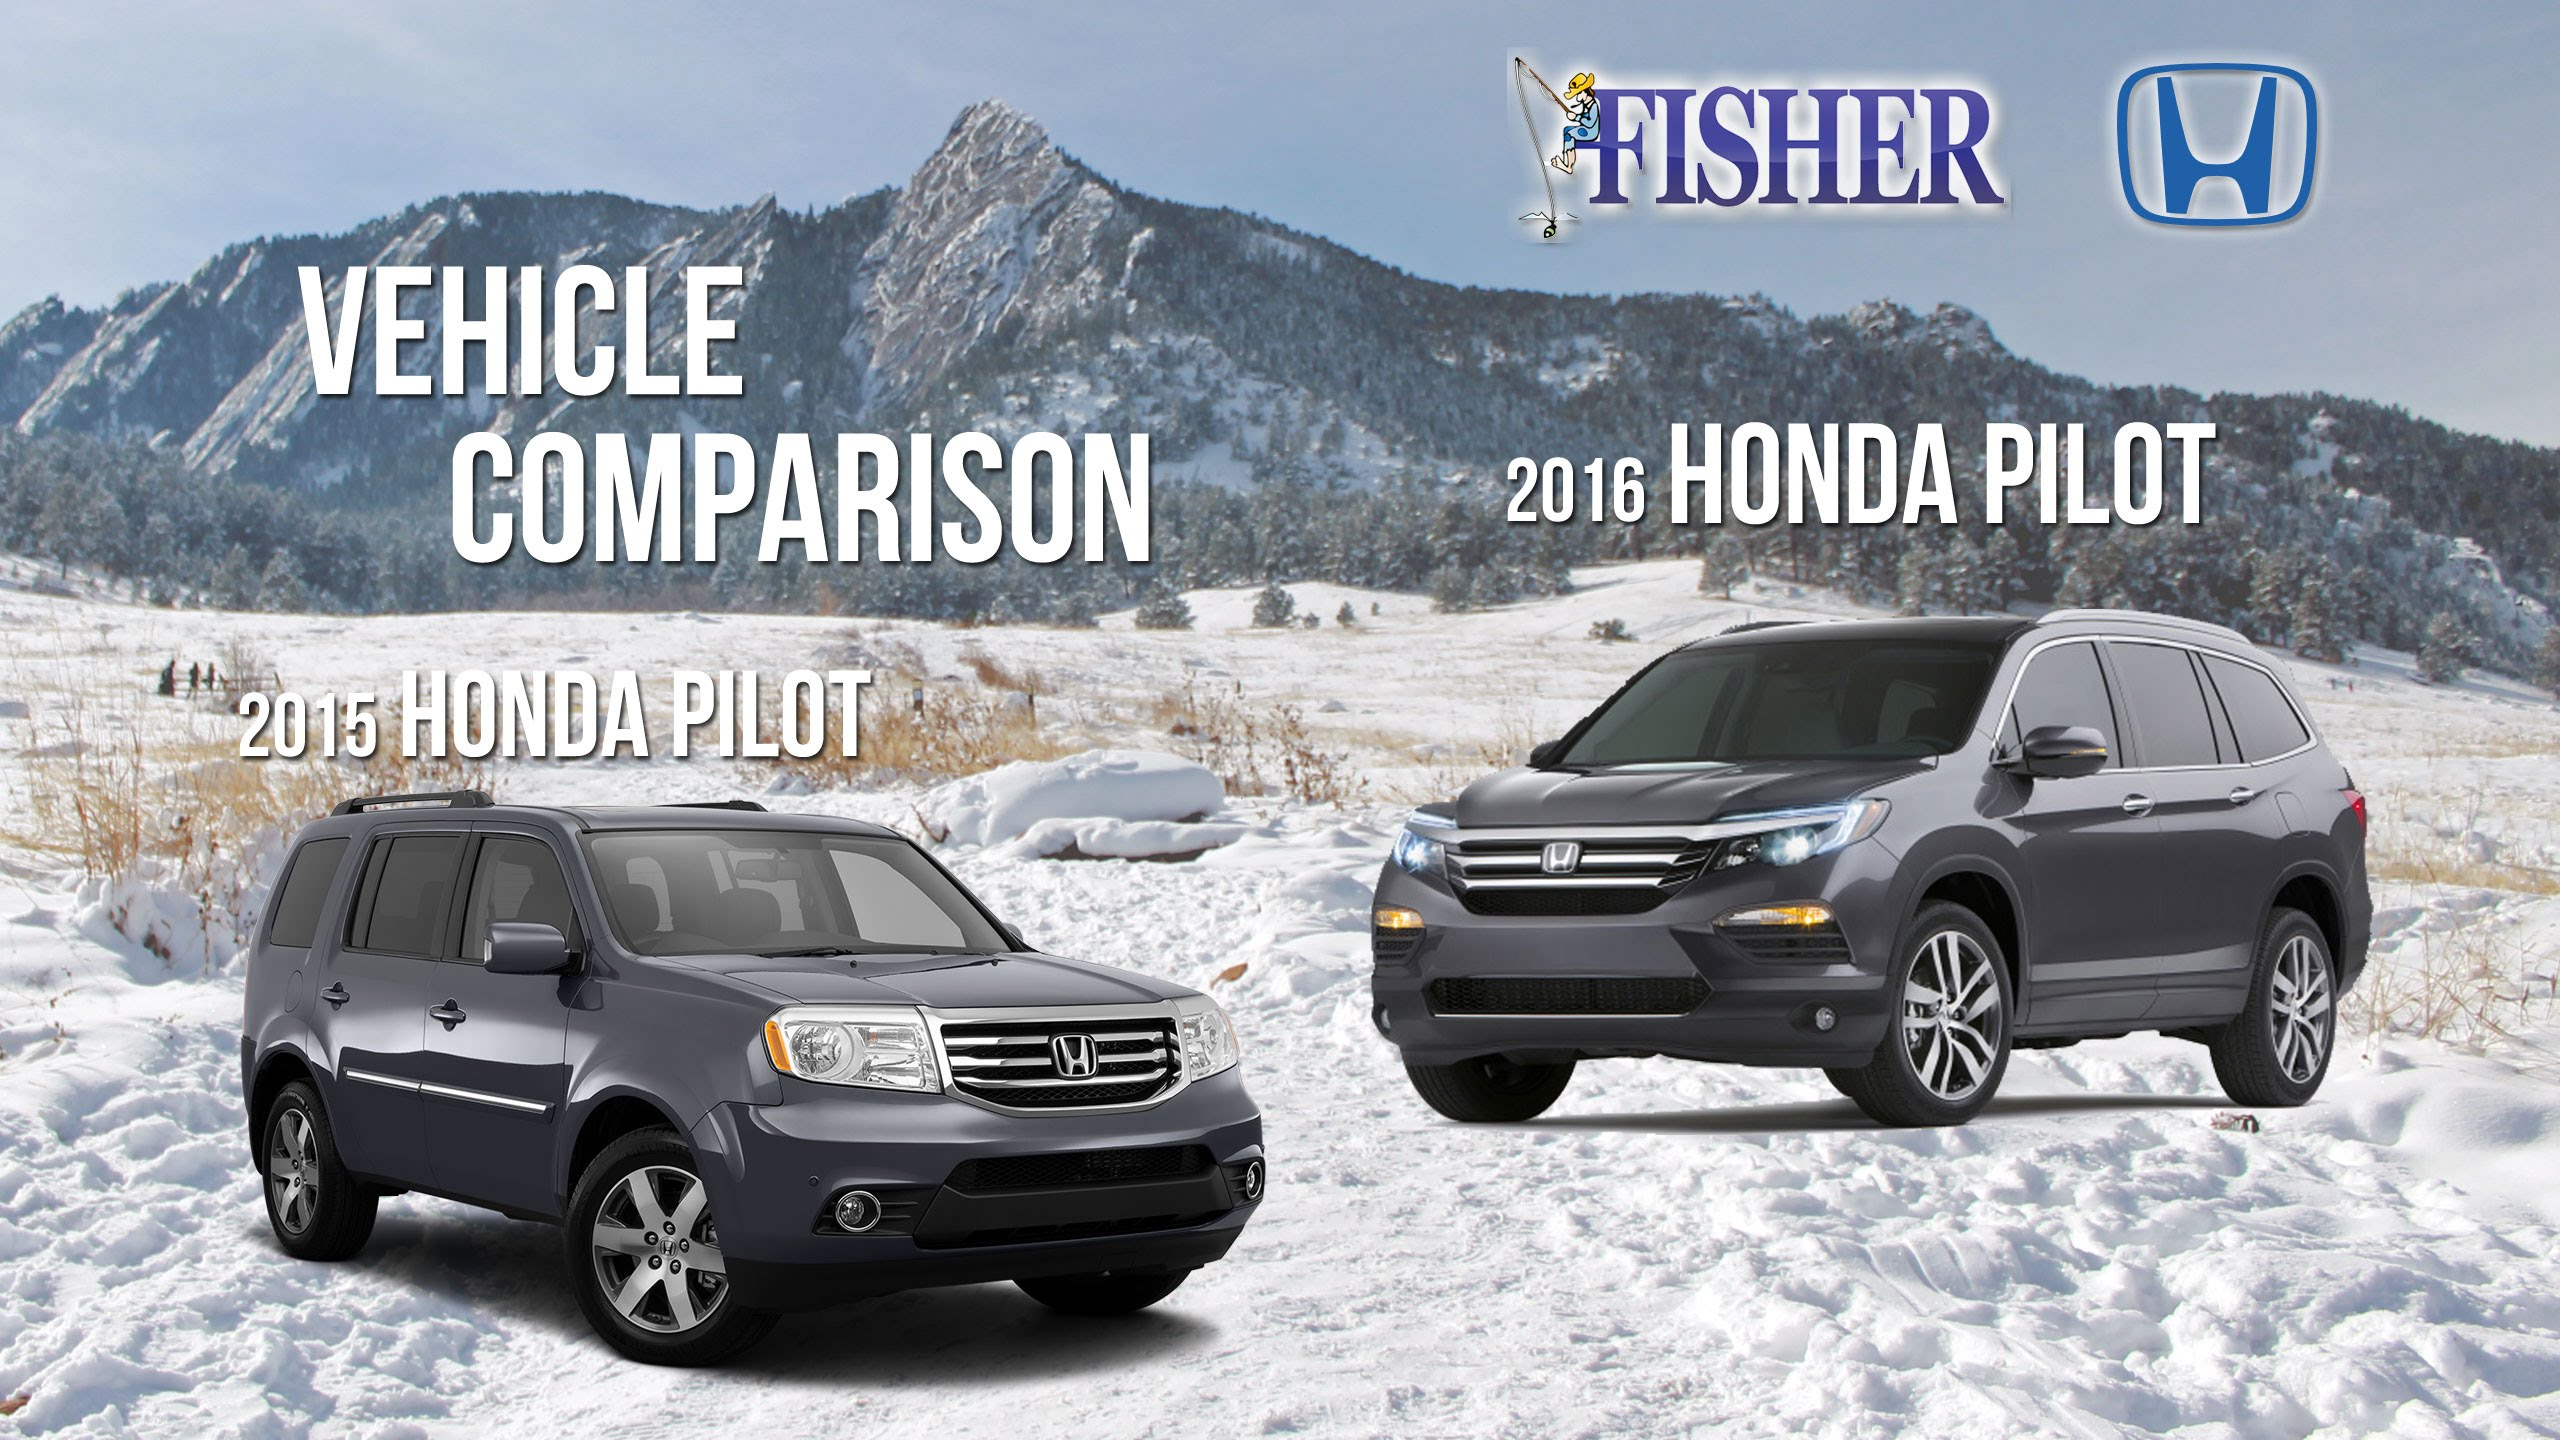 2016 Honda Pilot vs. 2015 Honda Pilot: Performance and Safety Comparison